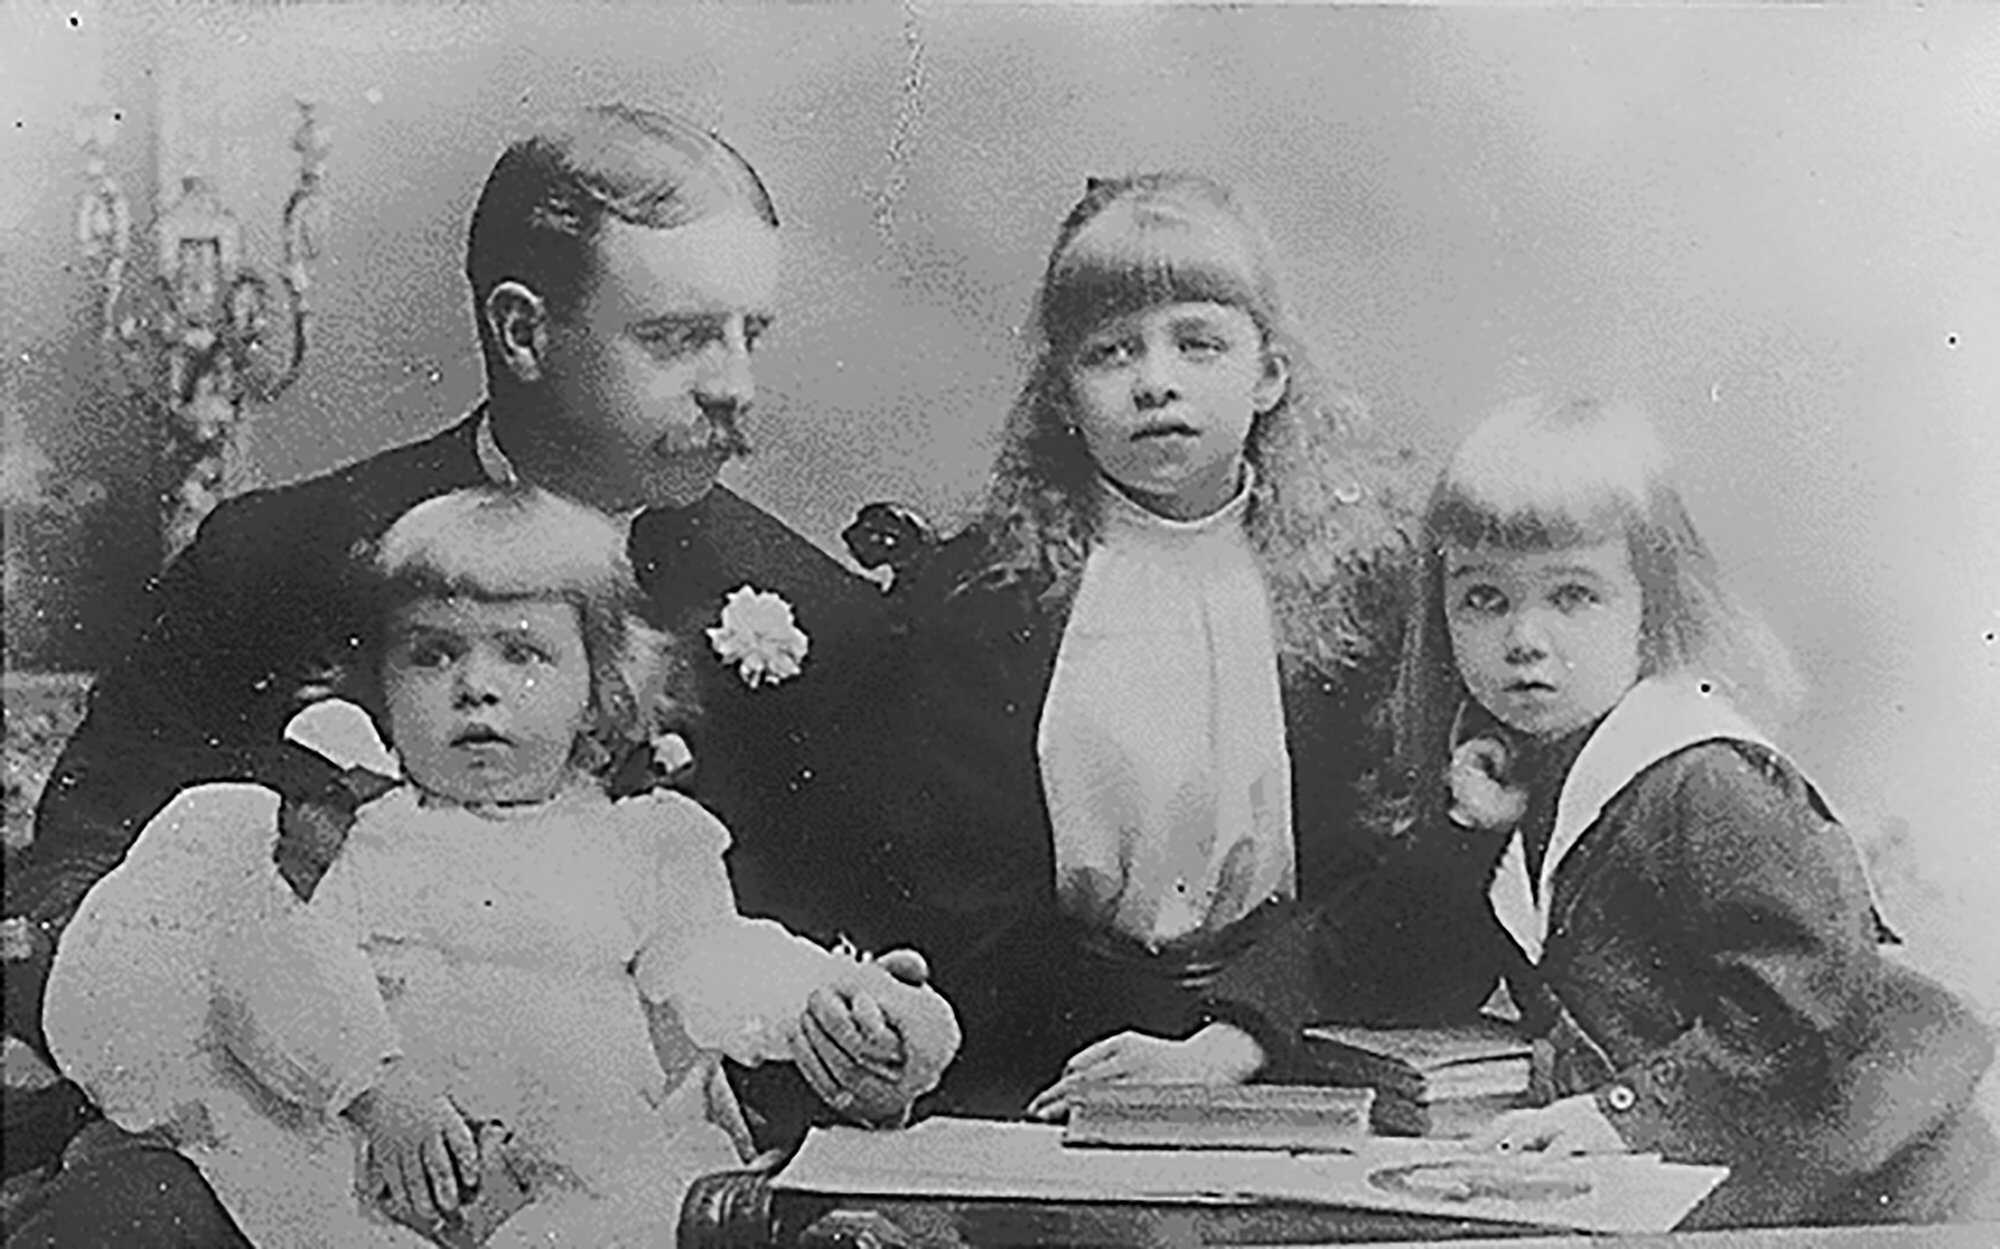 Eleanor_timeline_1_Eleanor_Roosevelt,_her_father,_Elliott,_and_her_brothers,_Elliott,_Jr_and_Gracie_Hall_in_New_York_1892.jpg